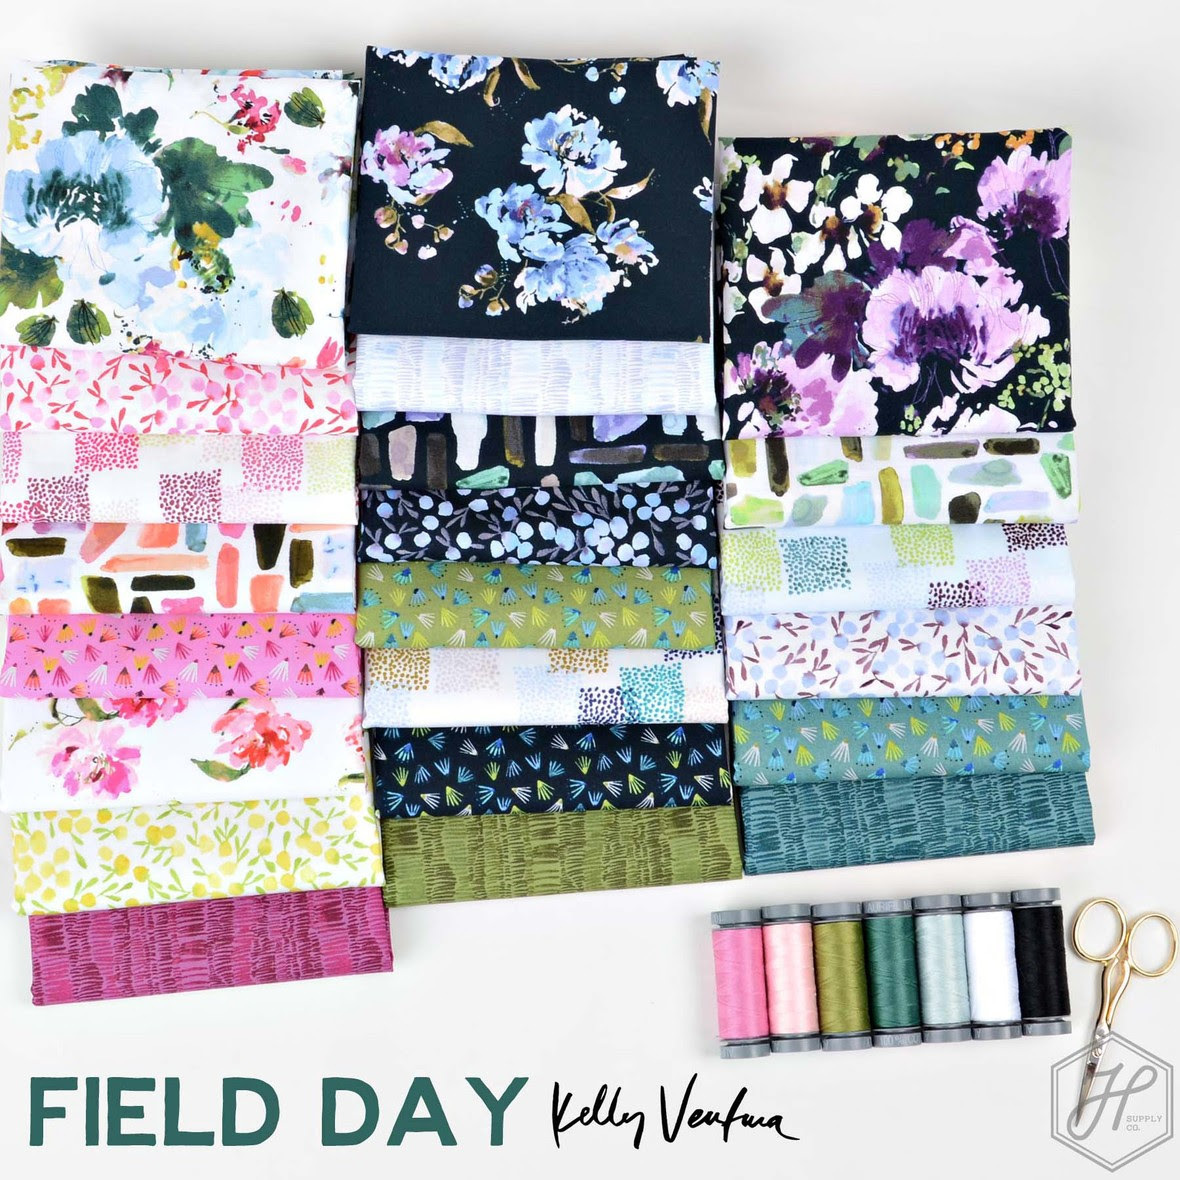 Field Day Fabric from Kelly Ventura at Hawthorne Supply Co